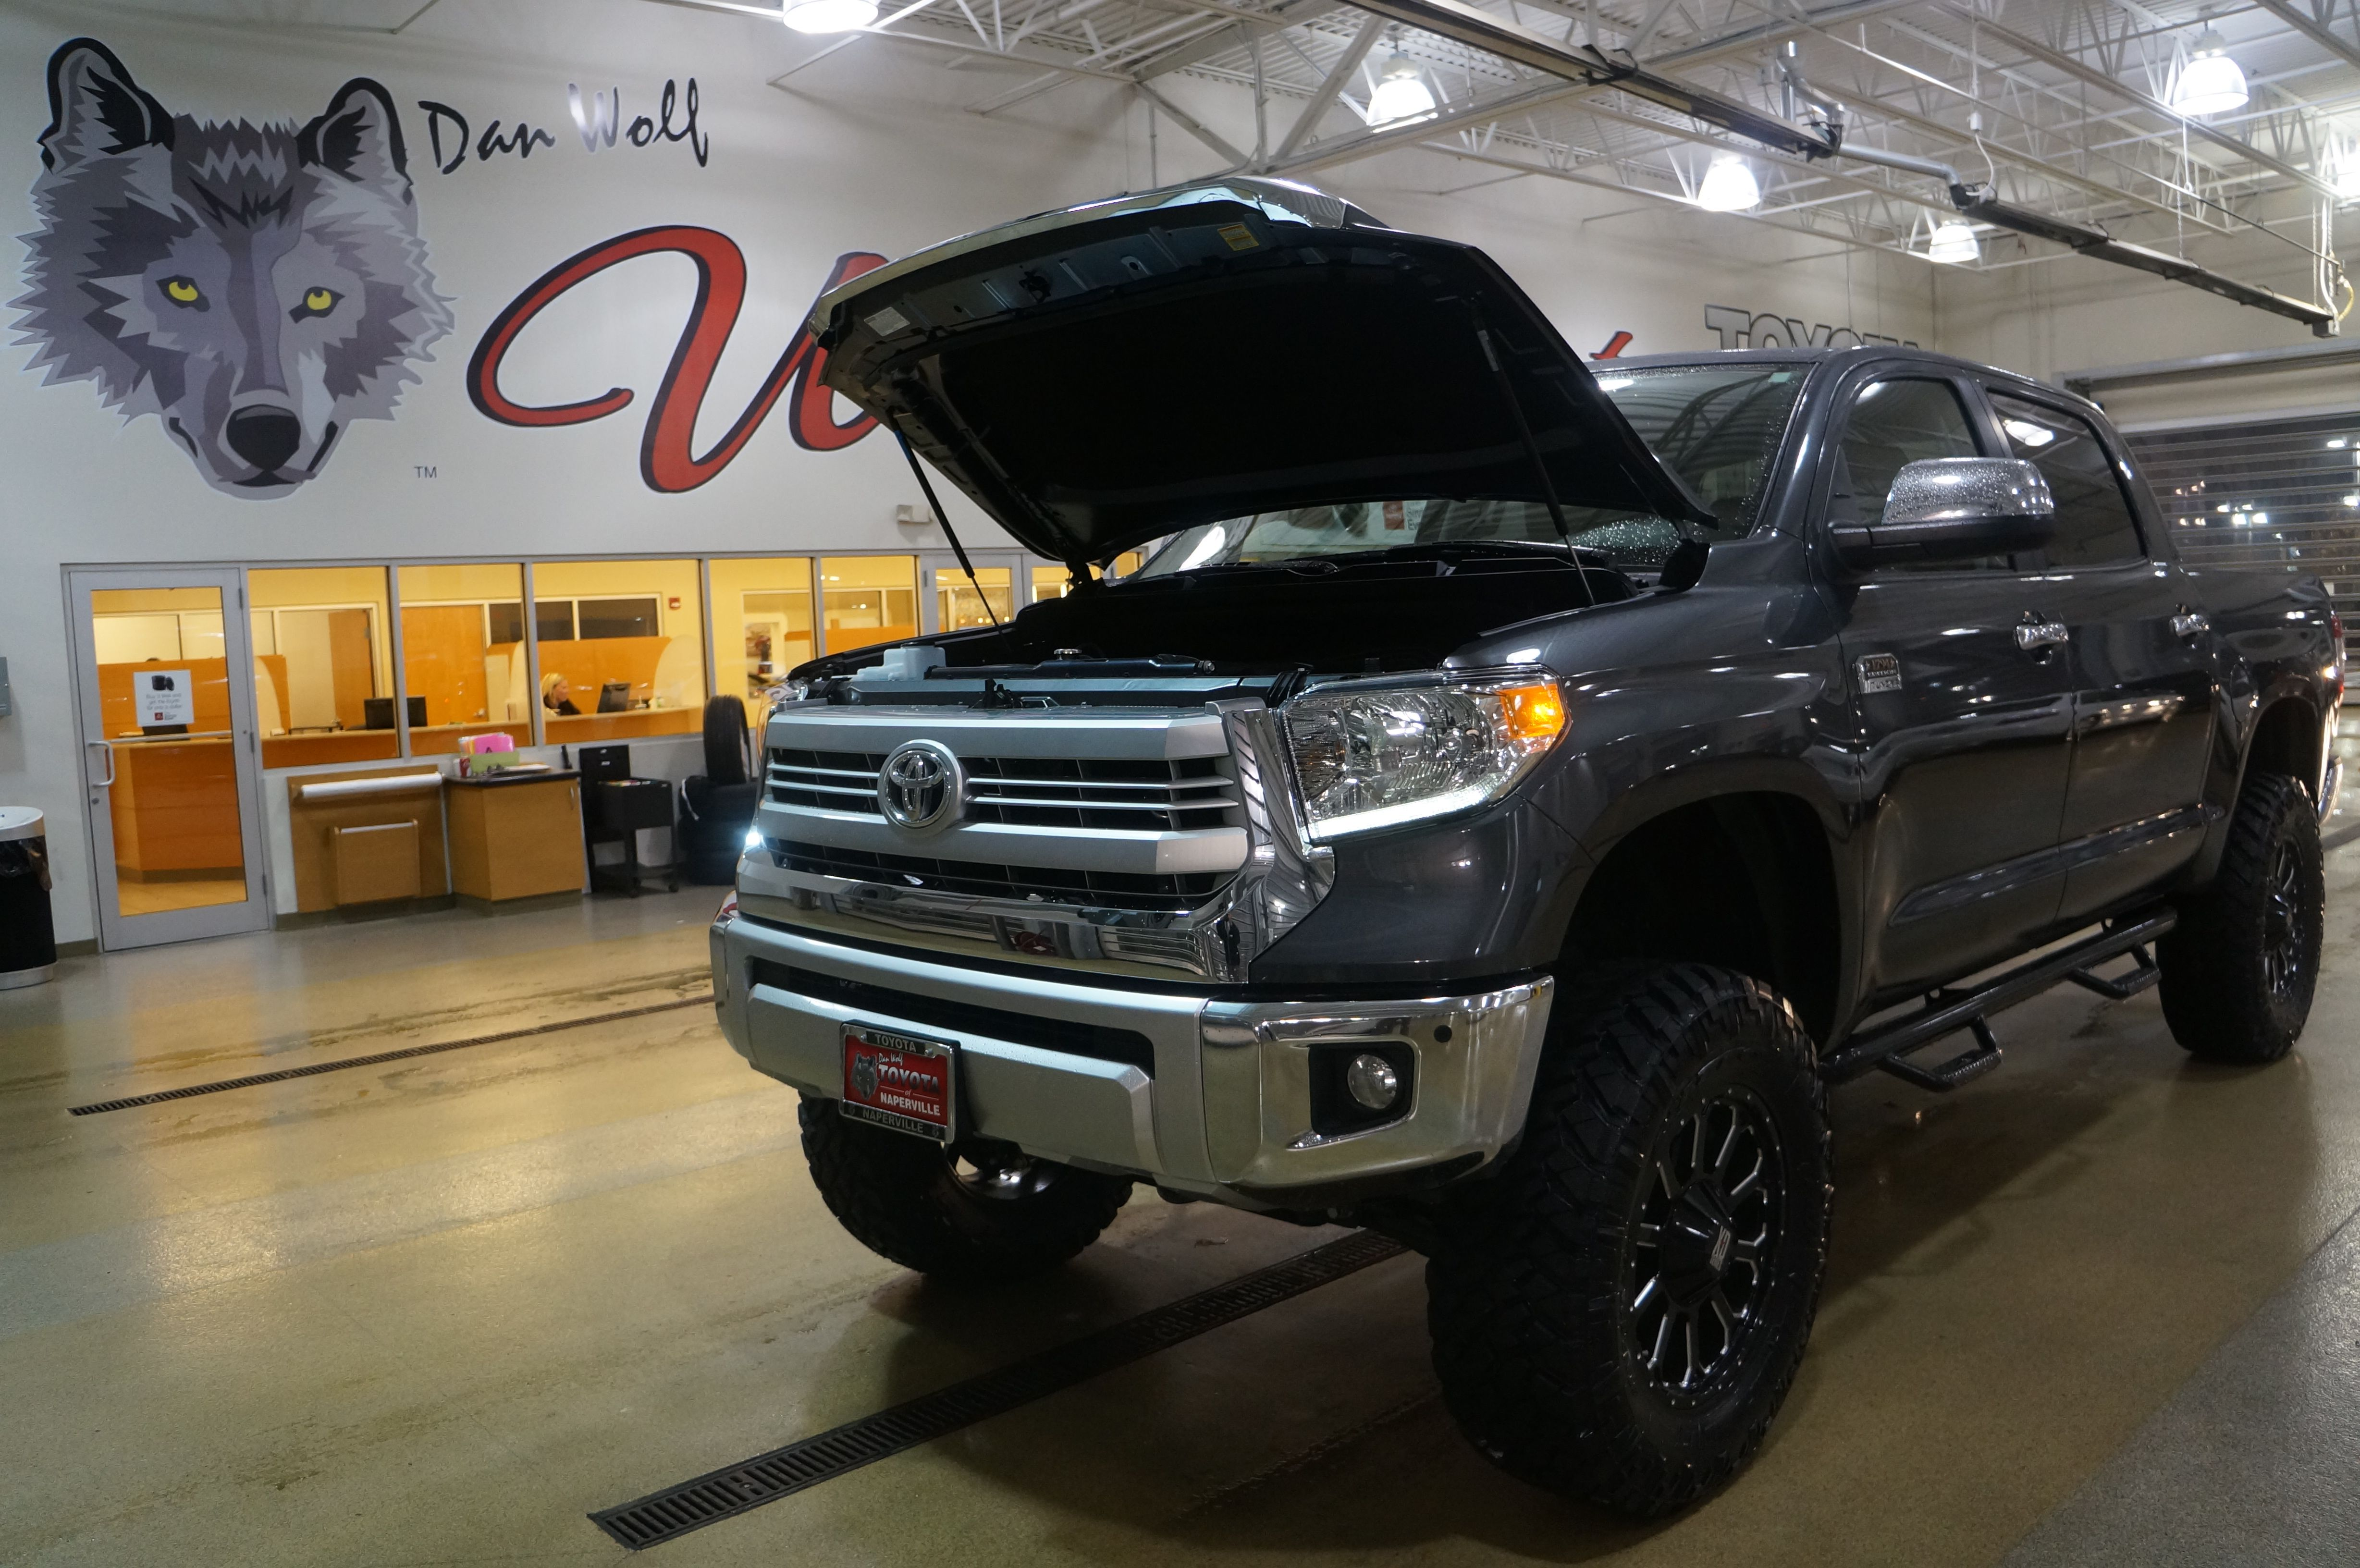 2014 Toyota Tundra 1794 Edition with lift kit custom